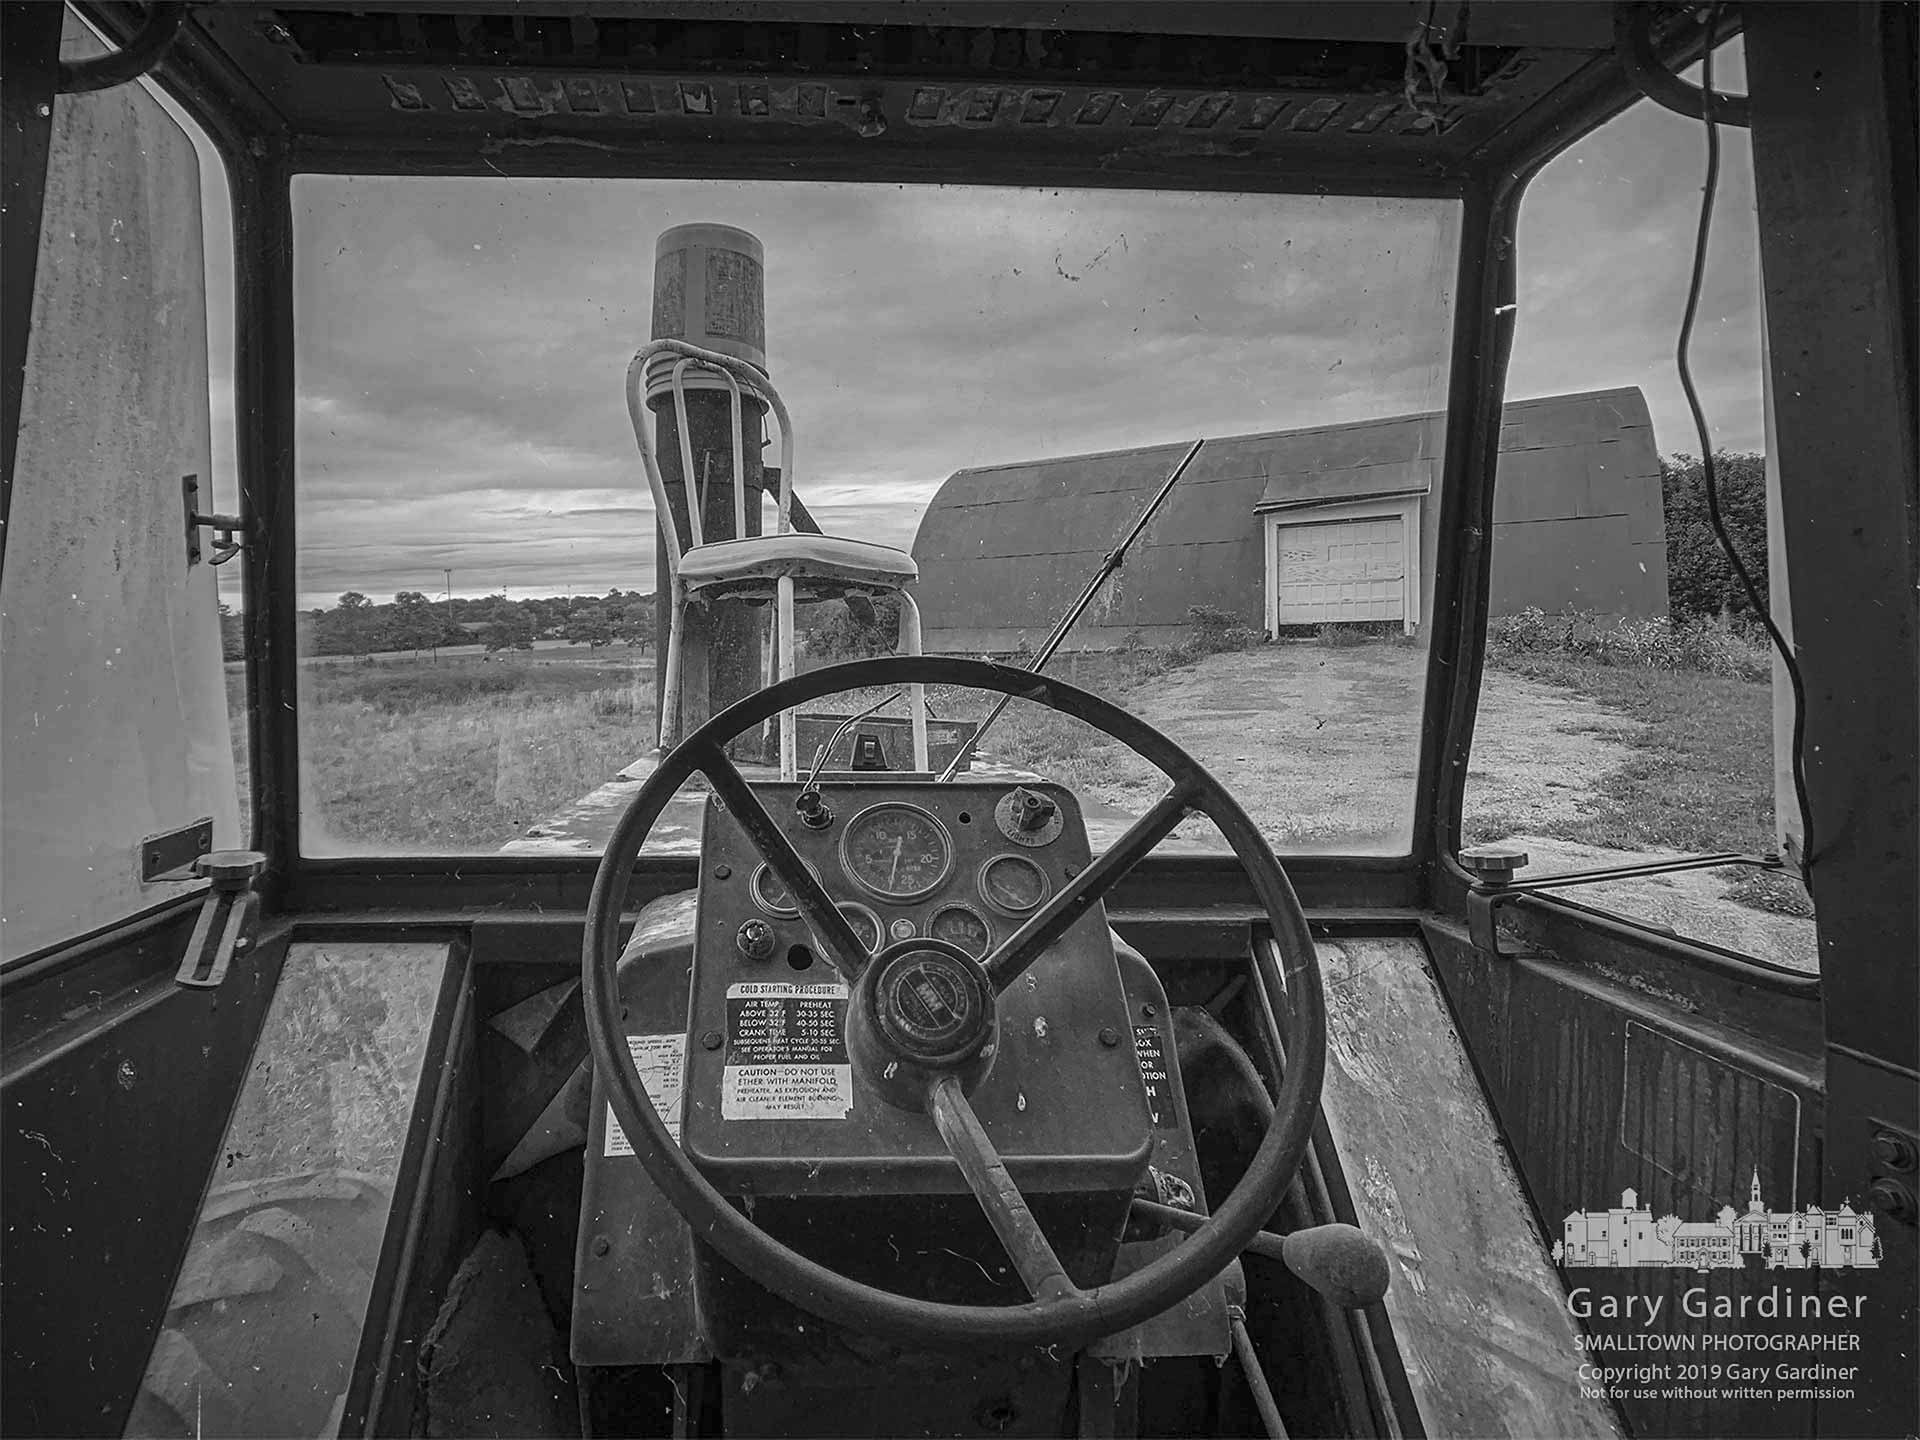 The barn on the Braun Farm as seen from the driver's seat of the tractor parked in the roadway leading to the barn. My Final Photo for Aug. 26, 2019.